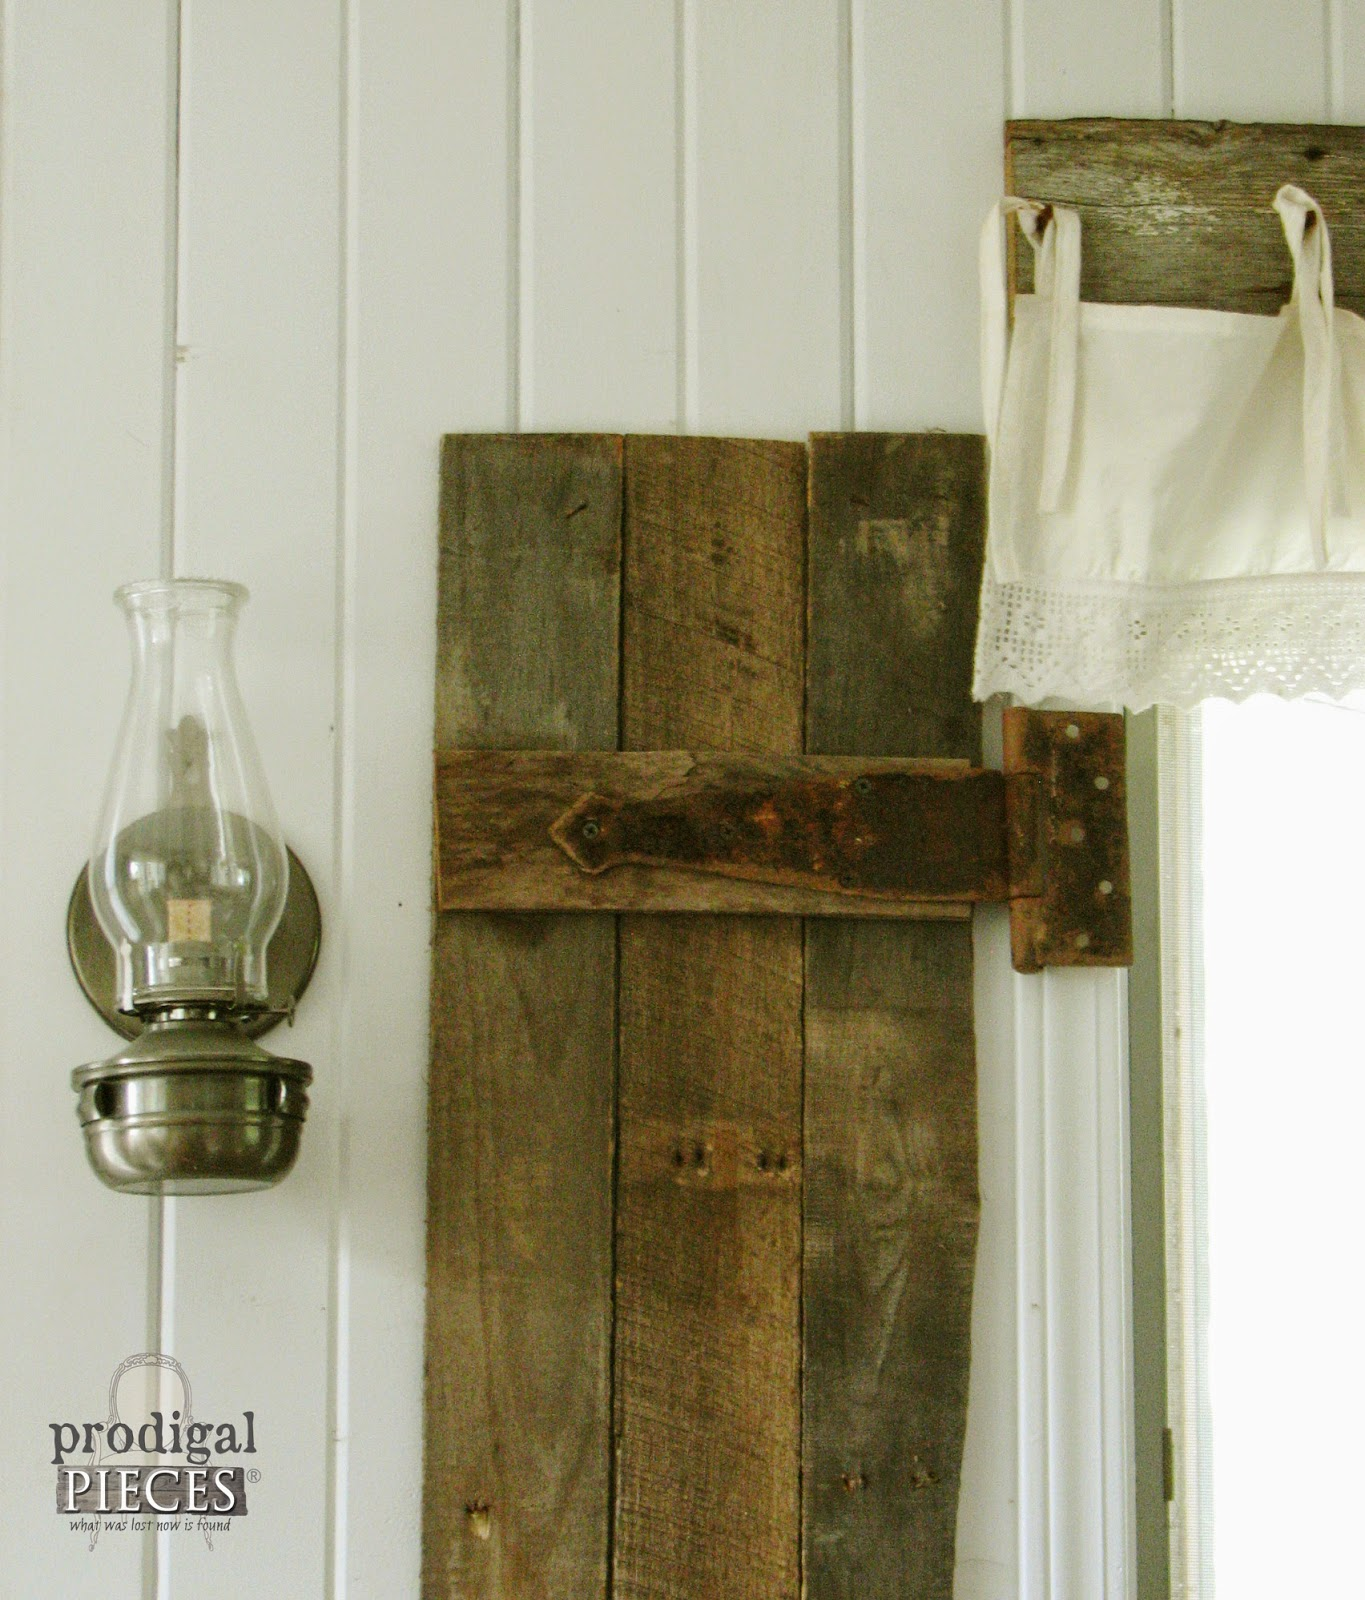 Barnwood Pieces Diy Barn Wood Shutters From Pallets Prodigal Pieces